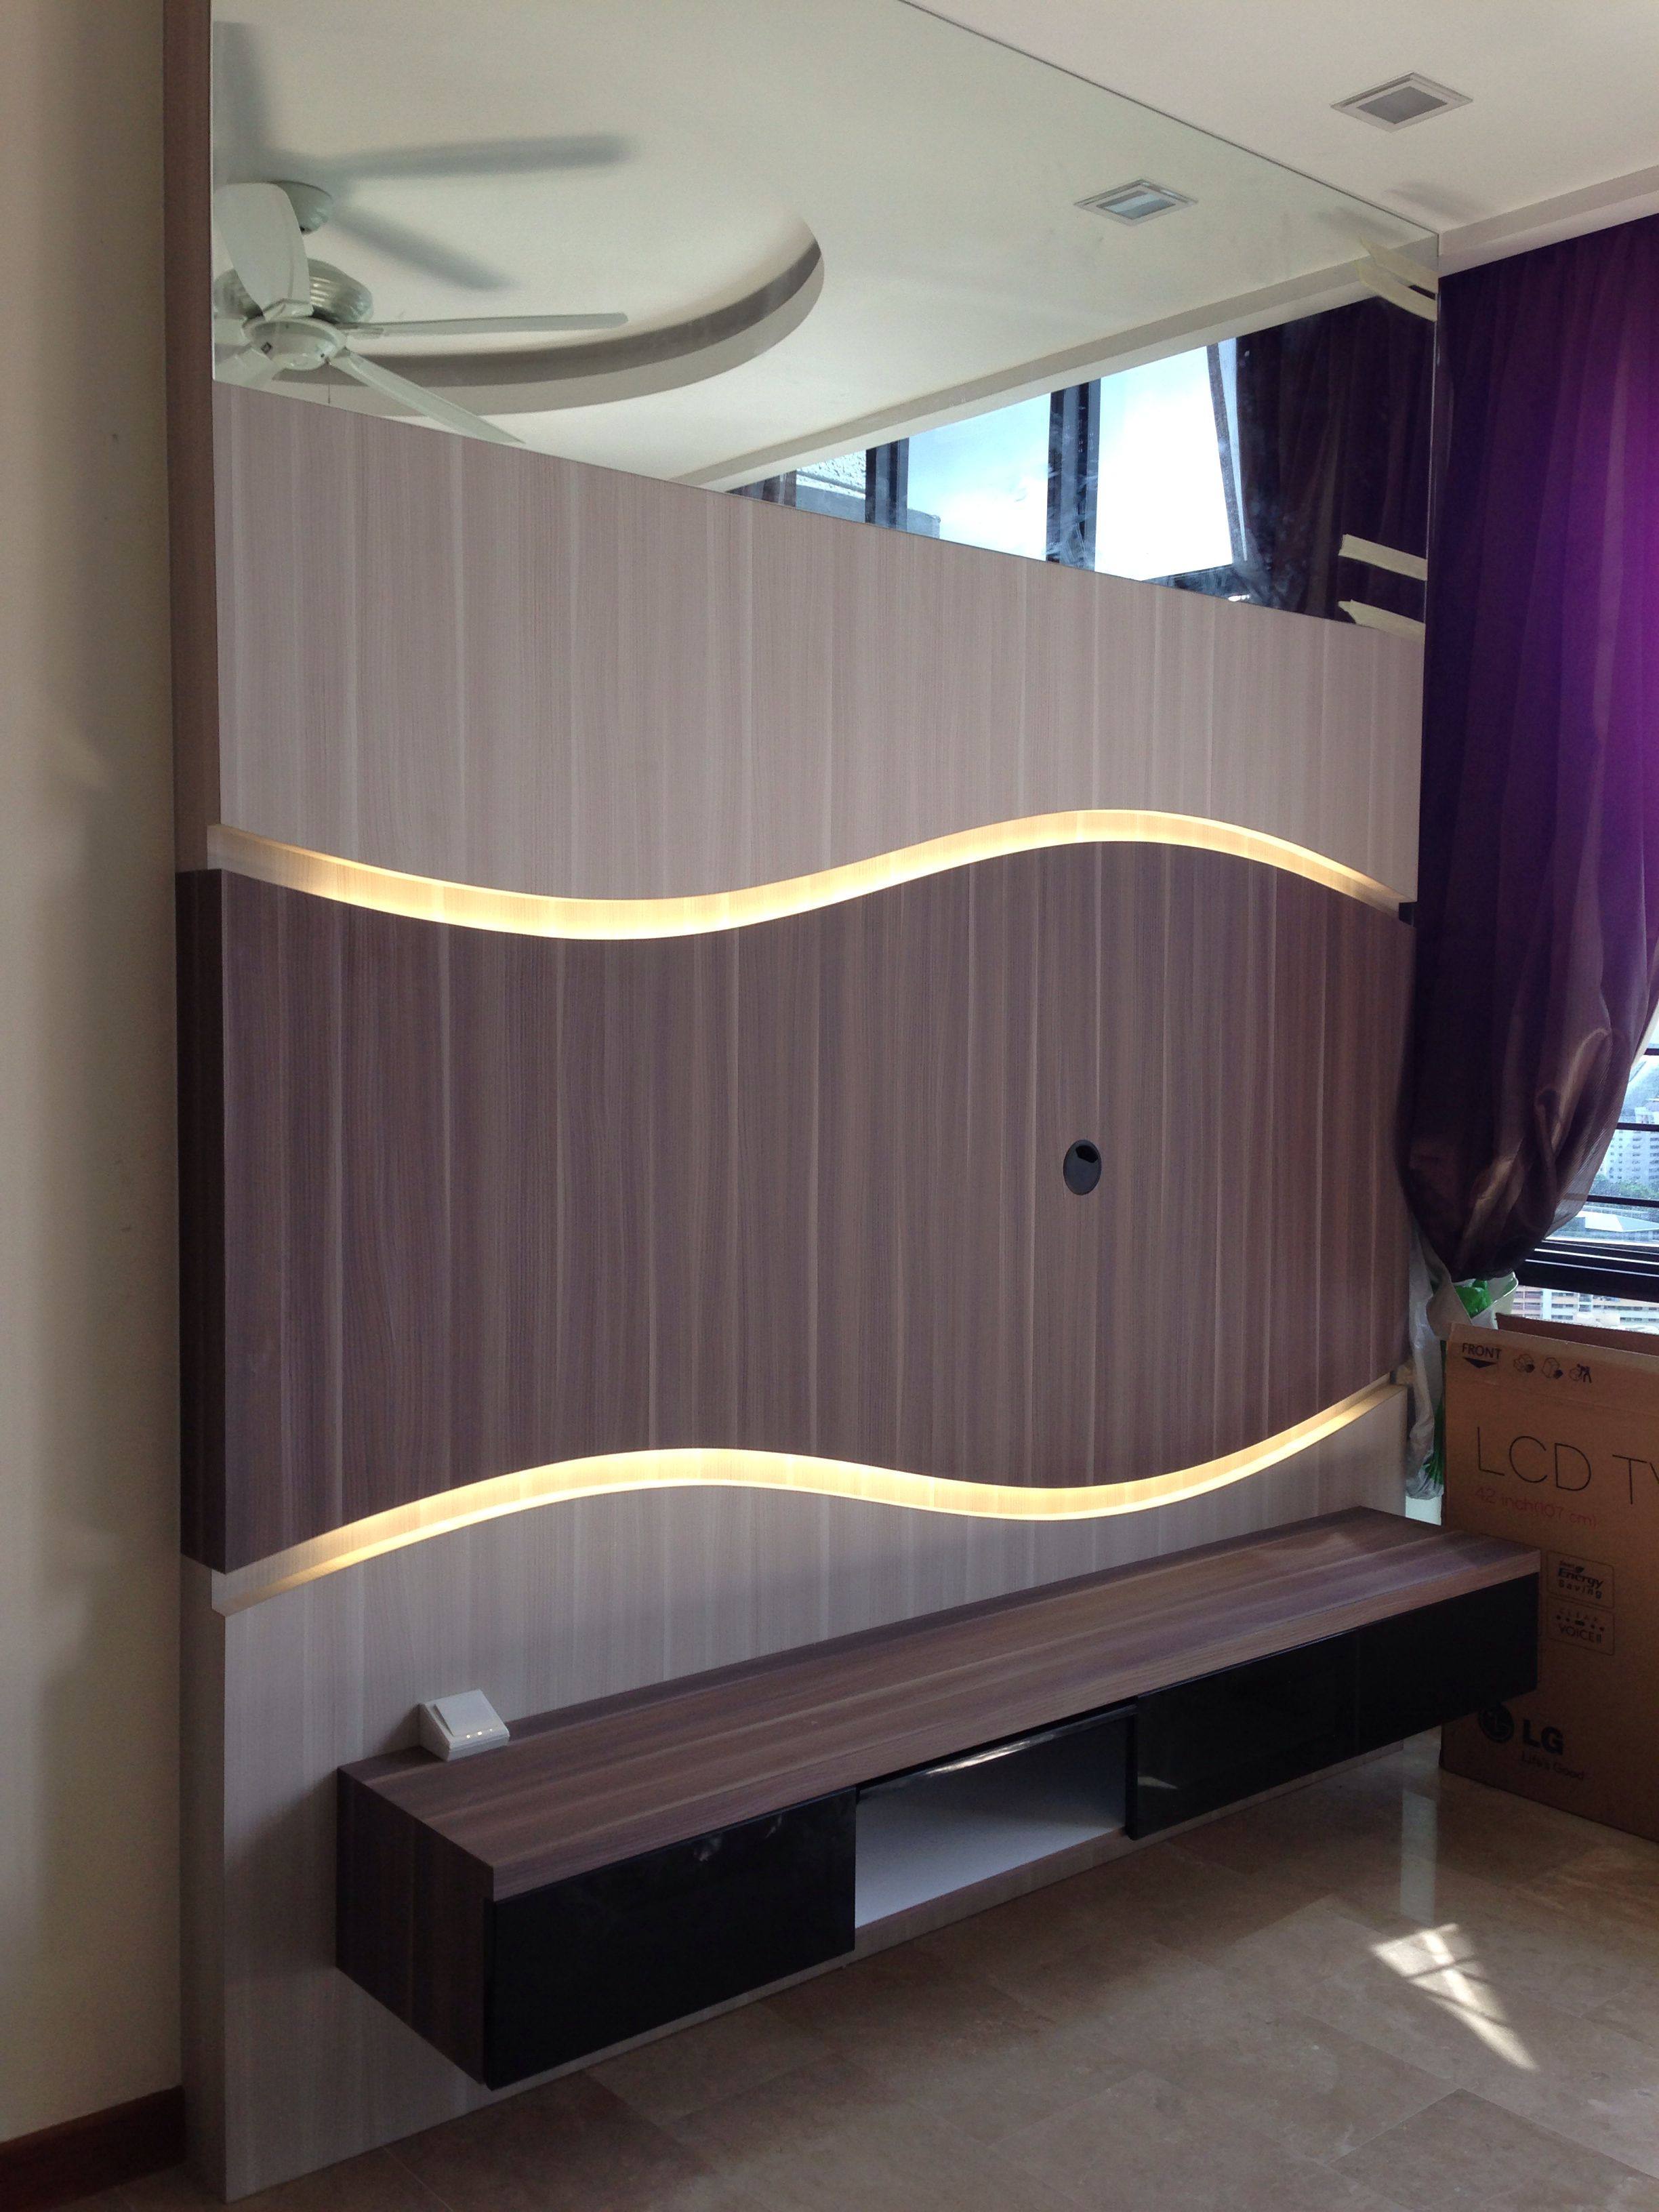 Living Room Feature Wall Design: Tv Feature Wall With Curve Alcove Lights